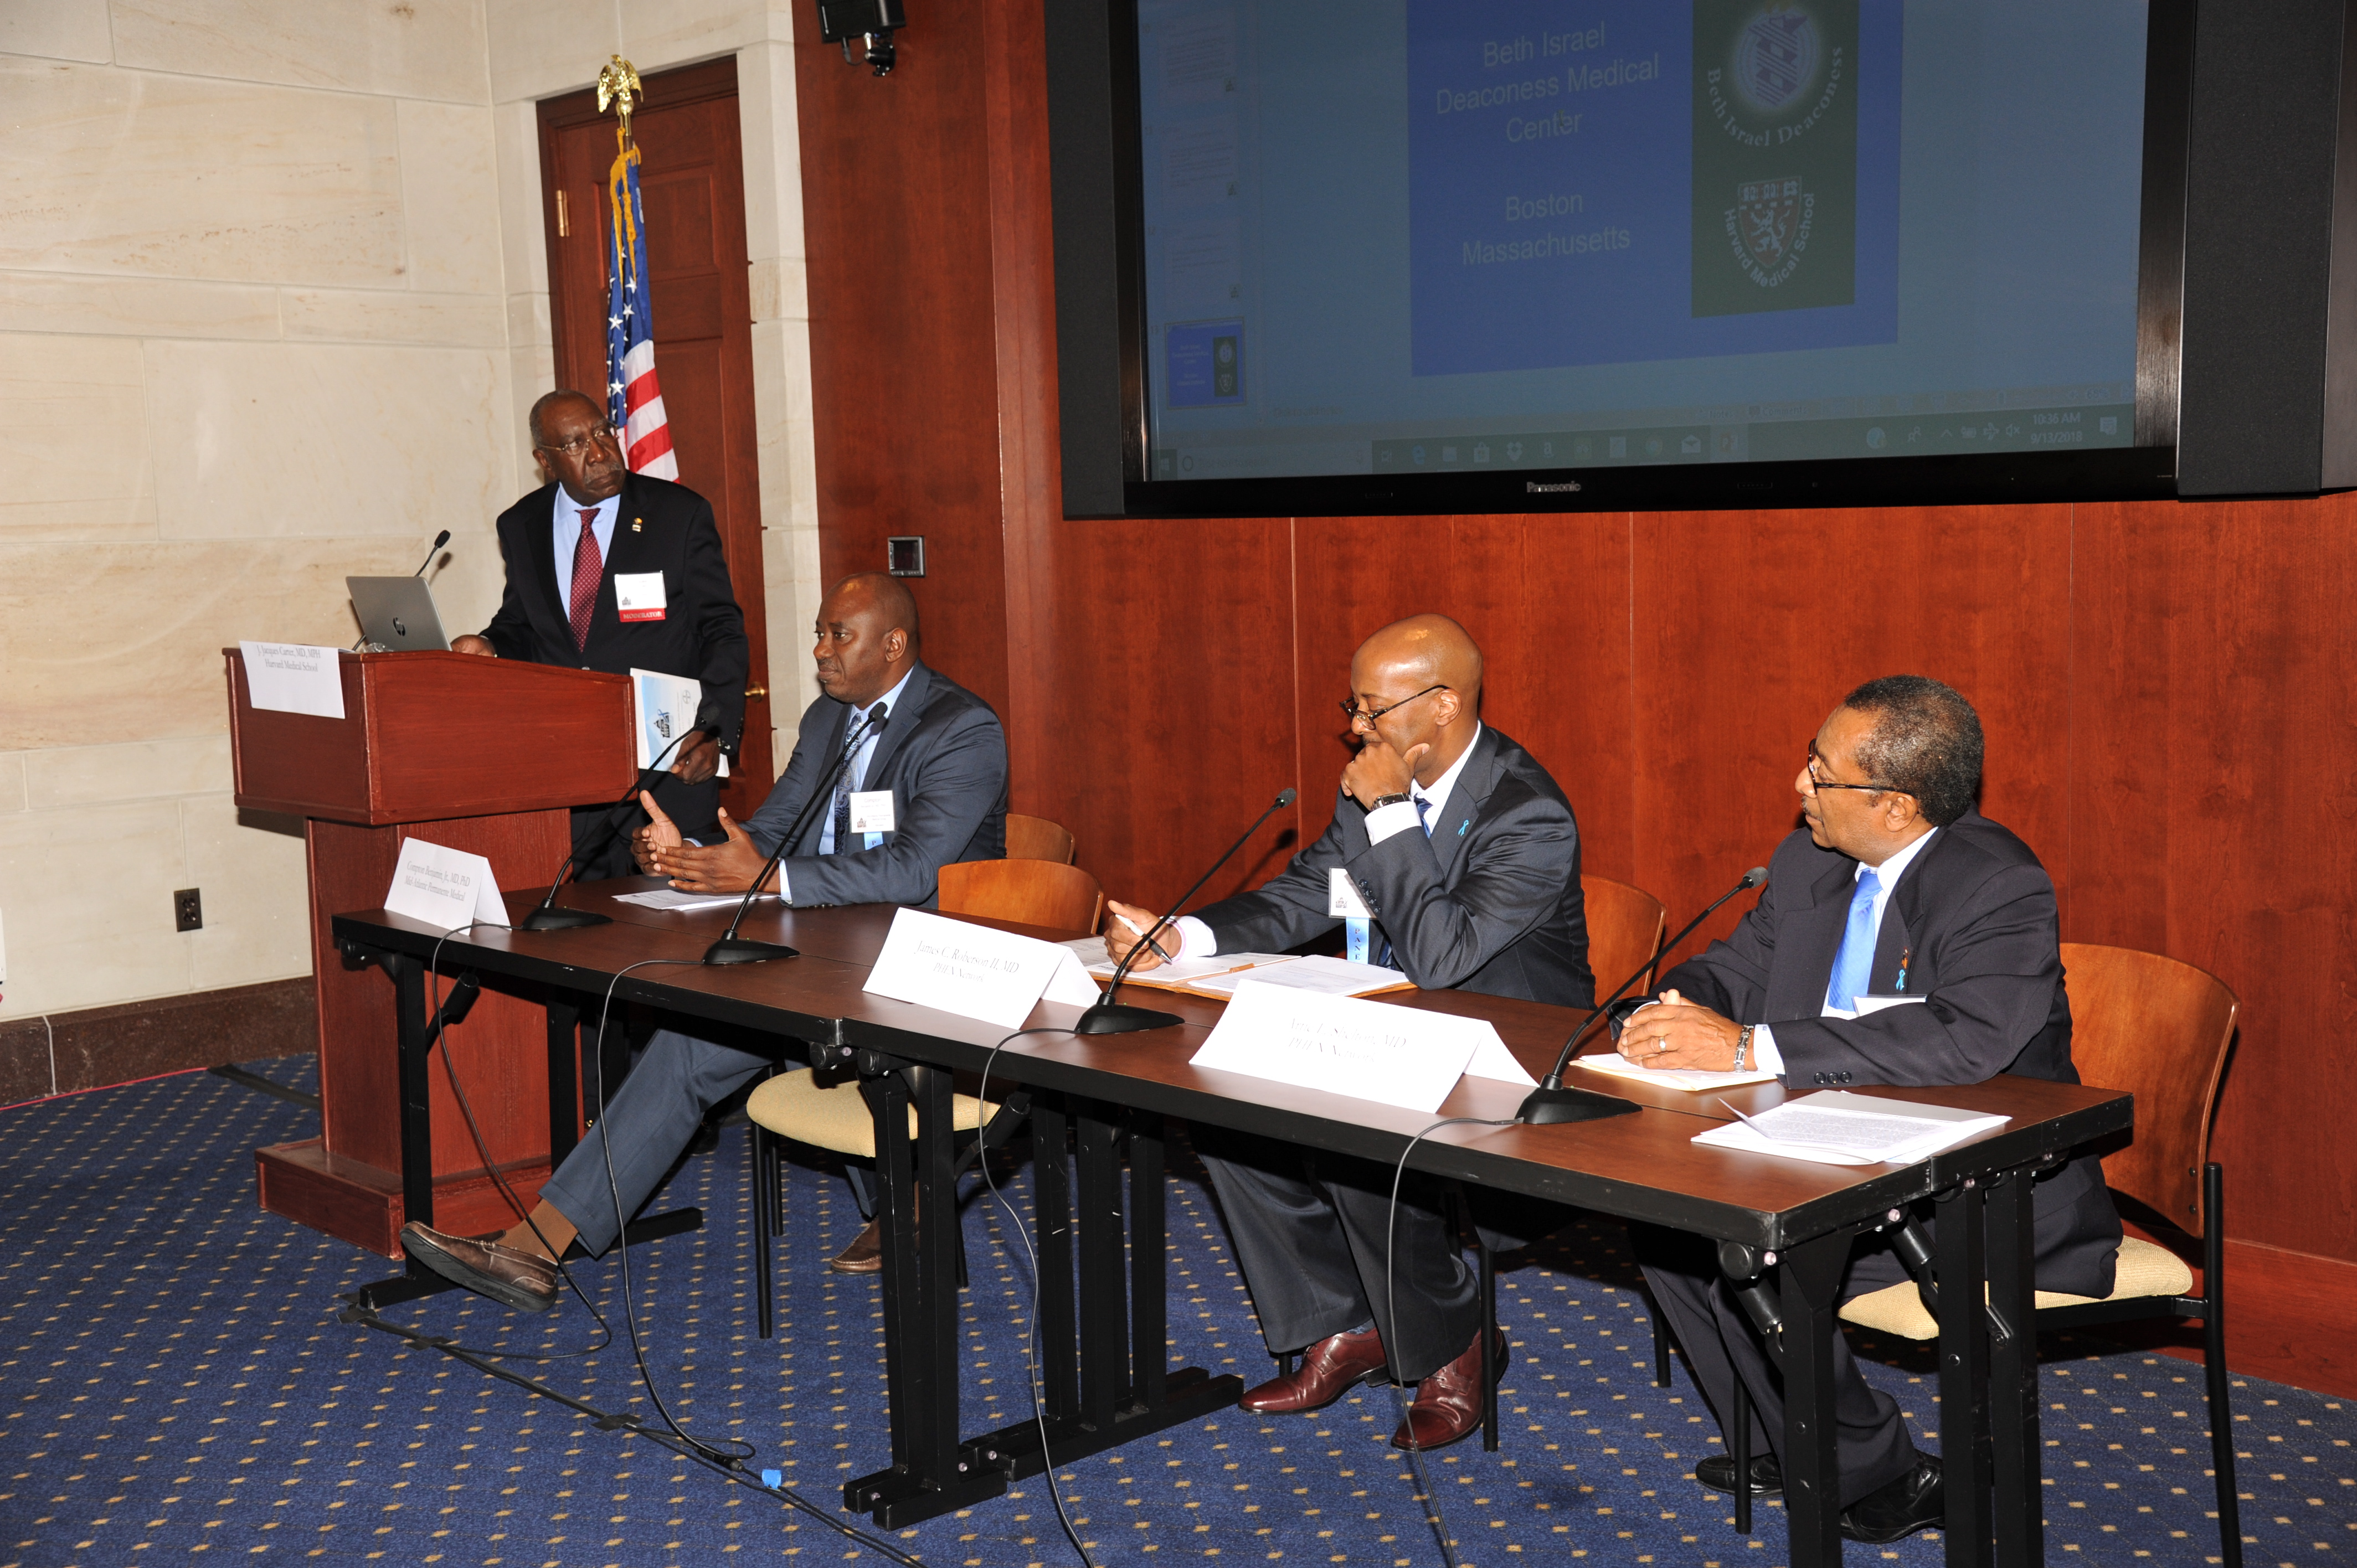 2018 Summit: Prostate Cancer Early Detection Panel with Dr. James Roberson II, Dr. Compton Benjamin Jr. and Dr. Artie Shelton